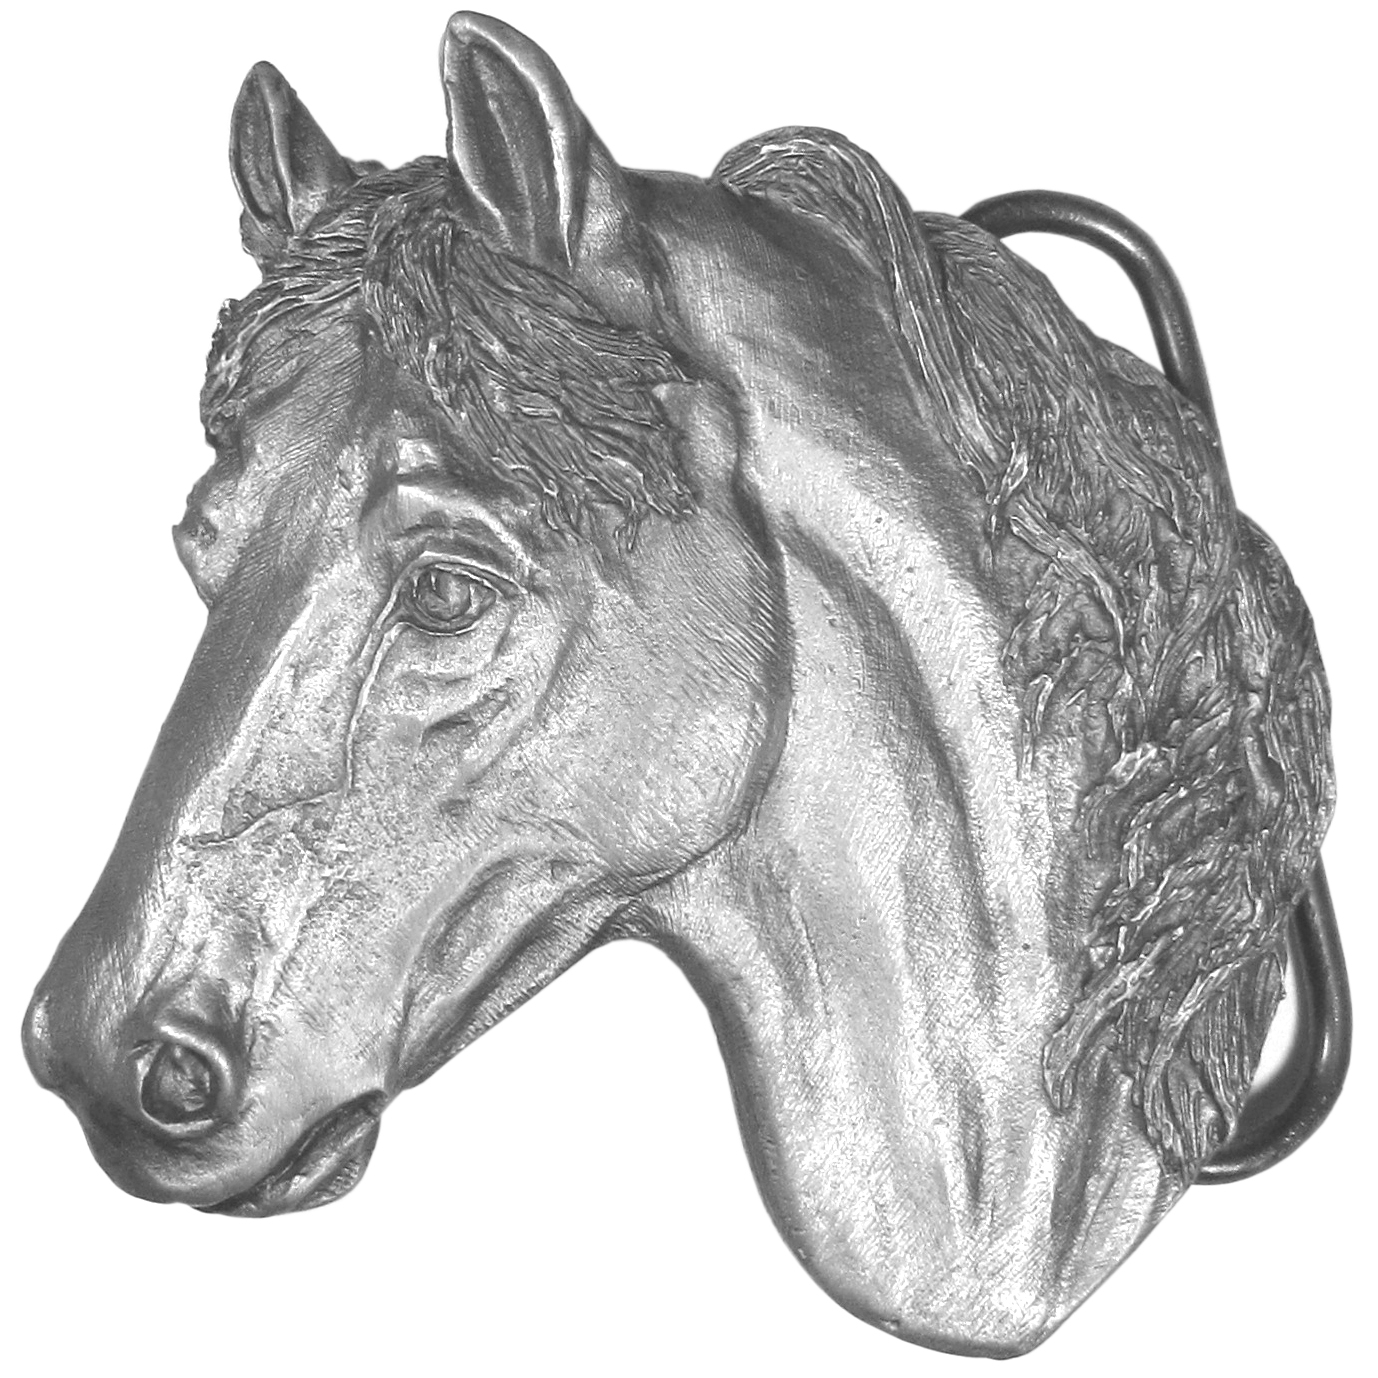 """Horse Antiqued Belt Buckle - """"For the horse lover, this buckle is shaped like a horse's head and has intricate detail. This beautiful buckle is made of fully cast metal with a standard bale that fits up to 2"""""""" belts. Siskiyou's unique buckle designs often become collectors items and are unequaled in craftsmanship. Made in the USA."""""""